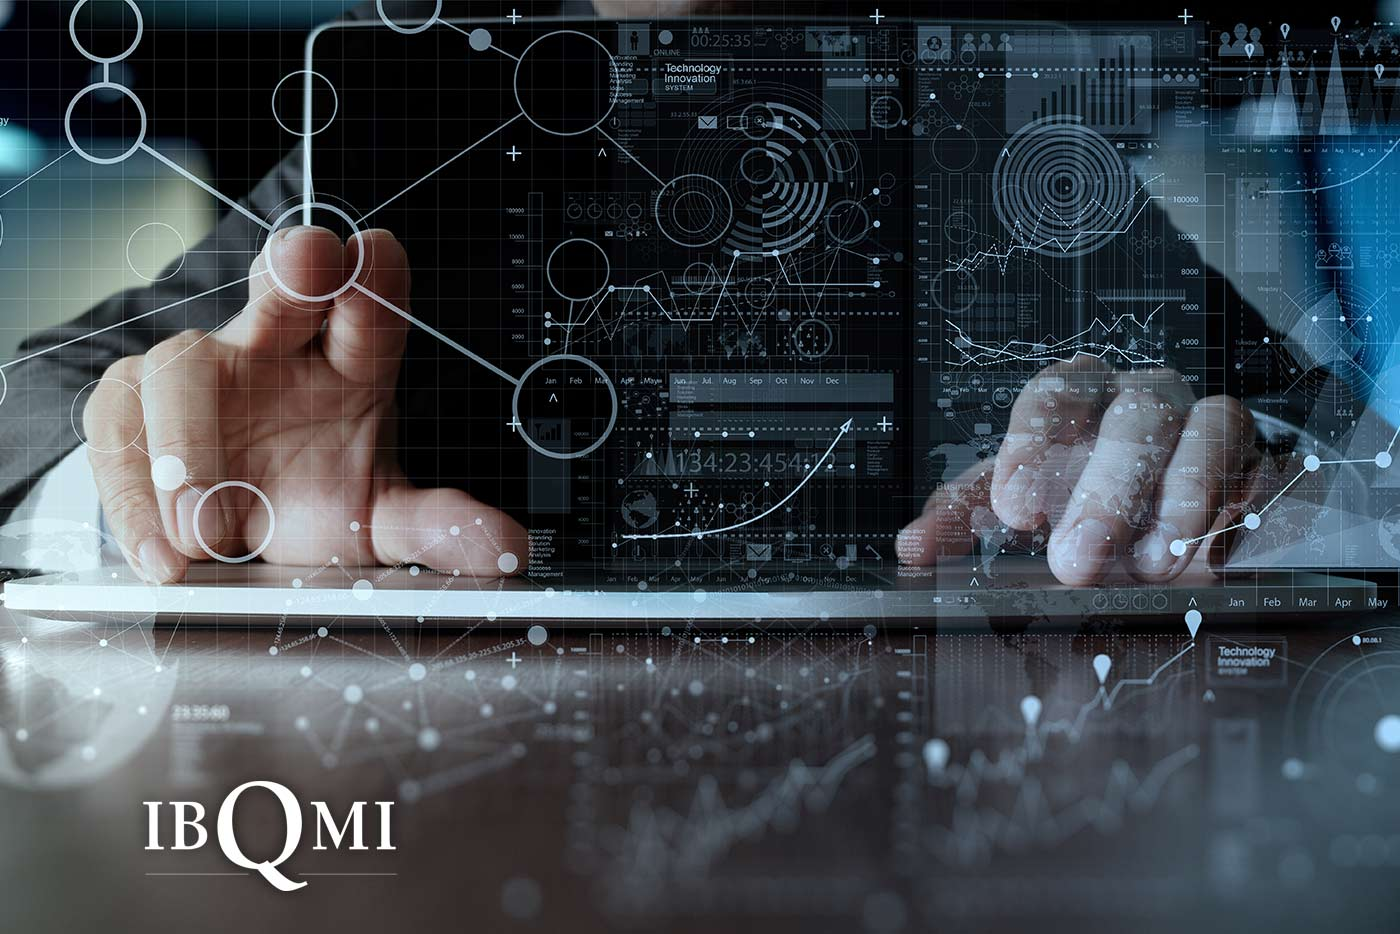 A fast guide for a successful business with ibqmi tqm